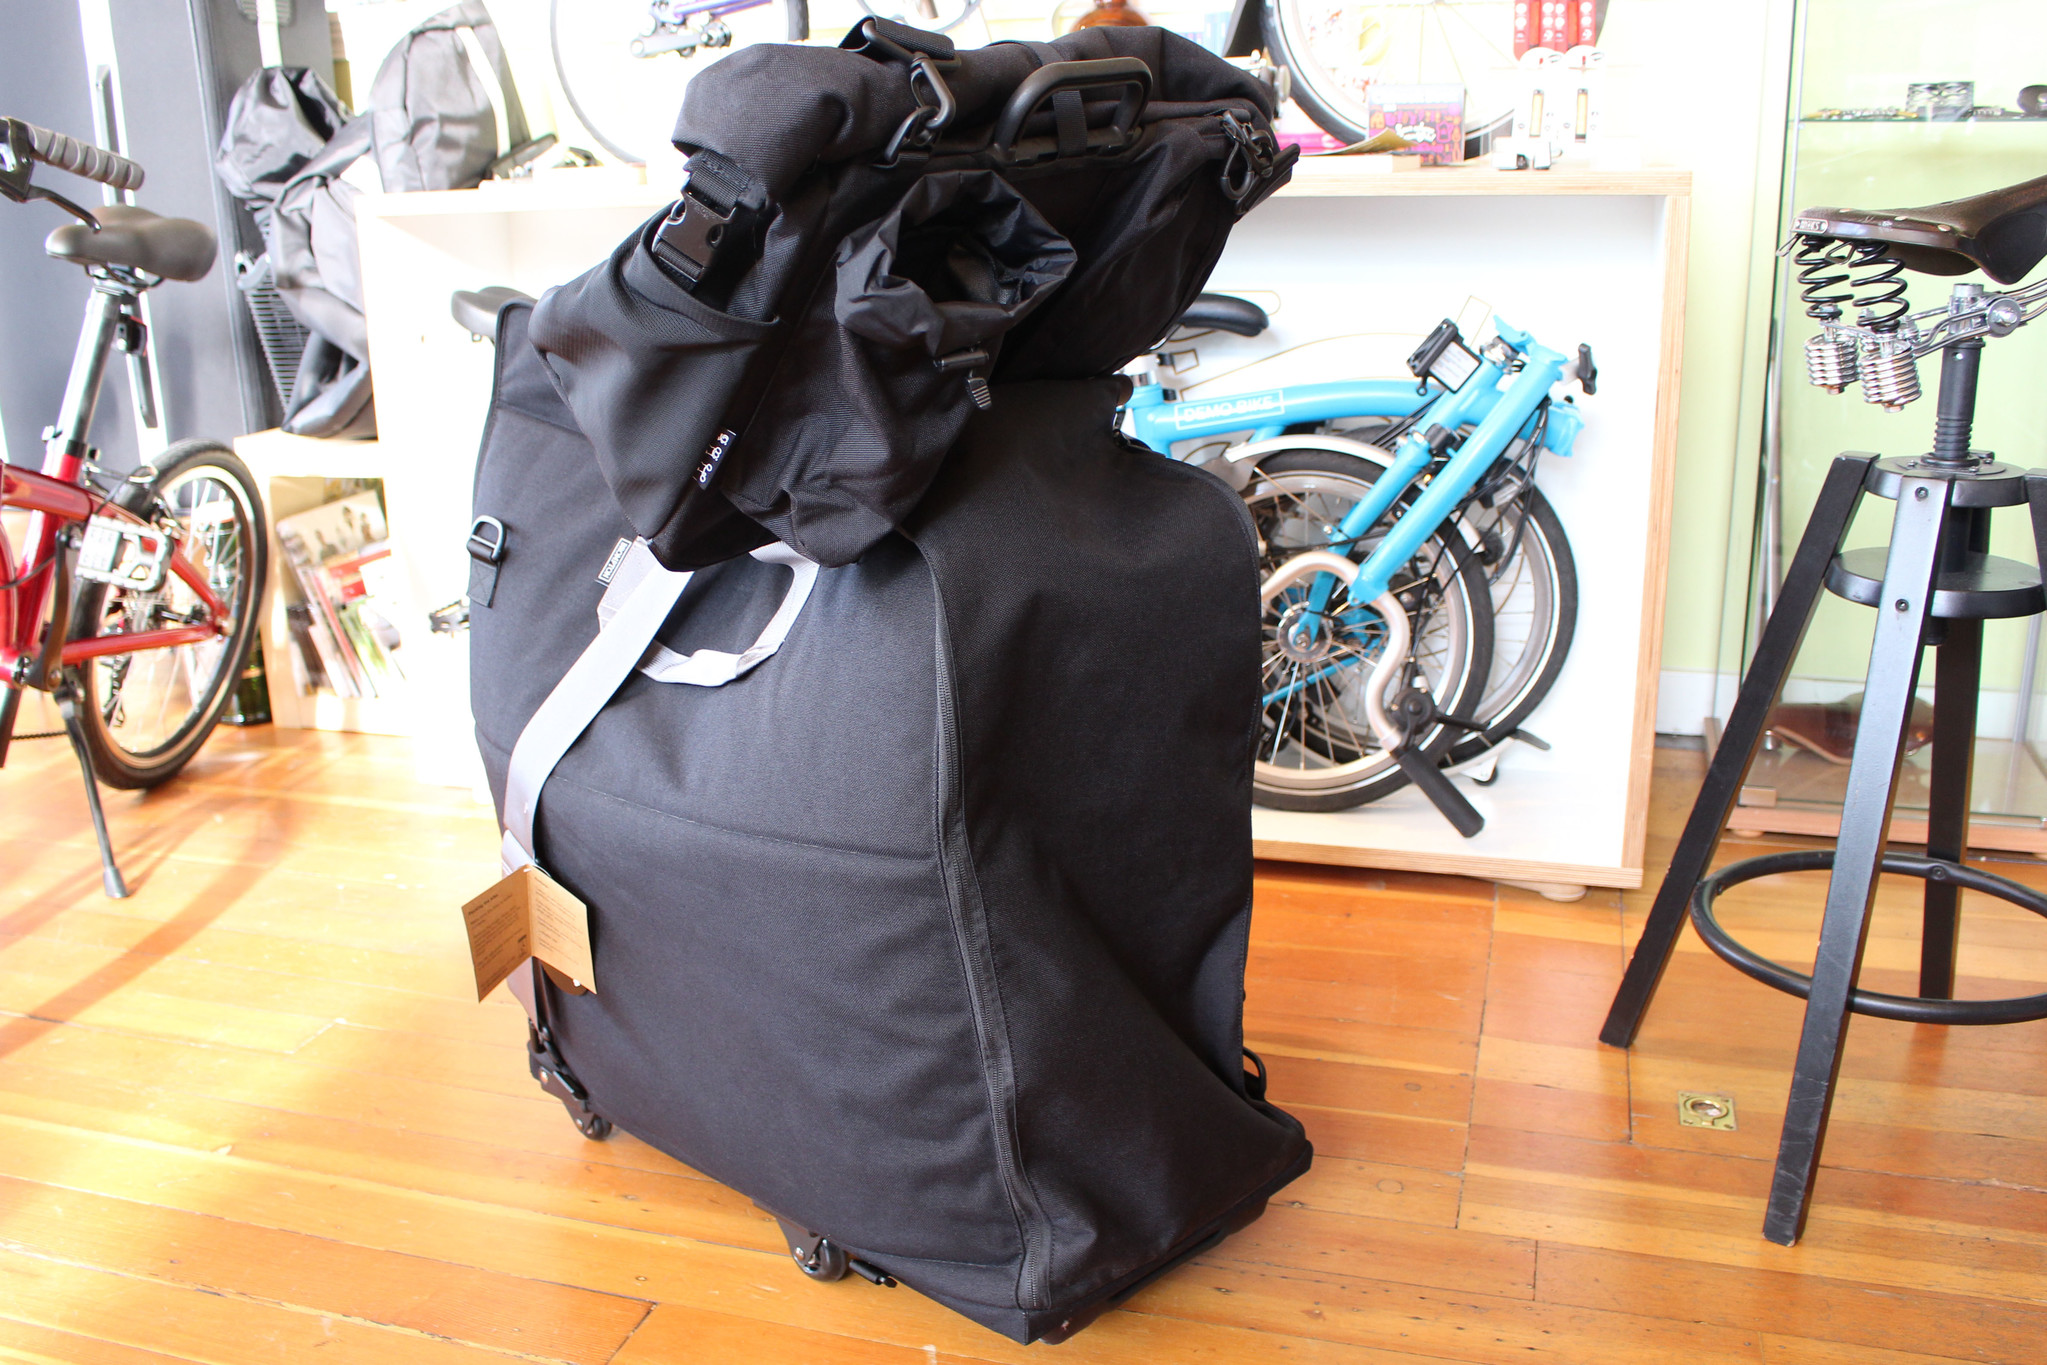 Brompton Travel Bag with Brompton T Bag attached